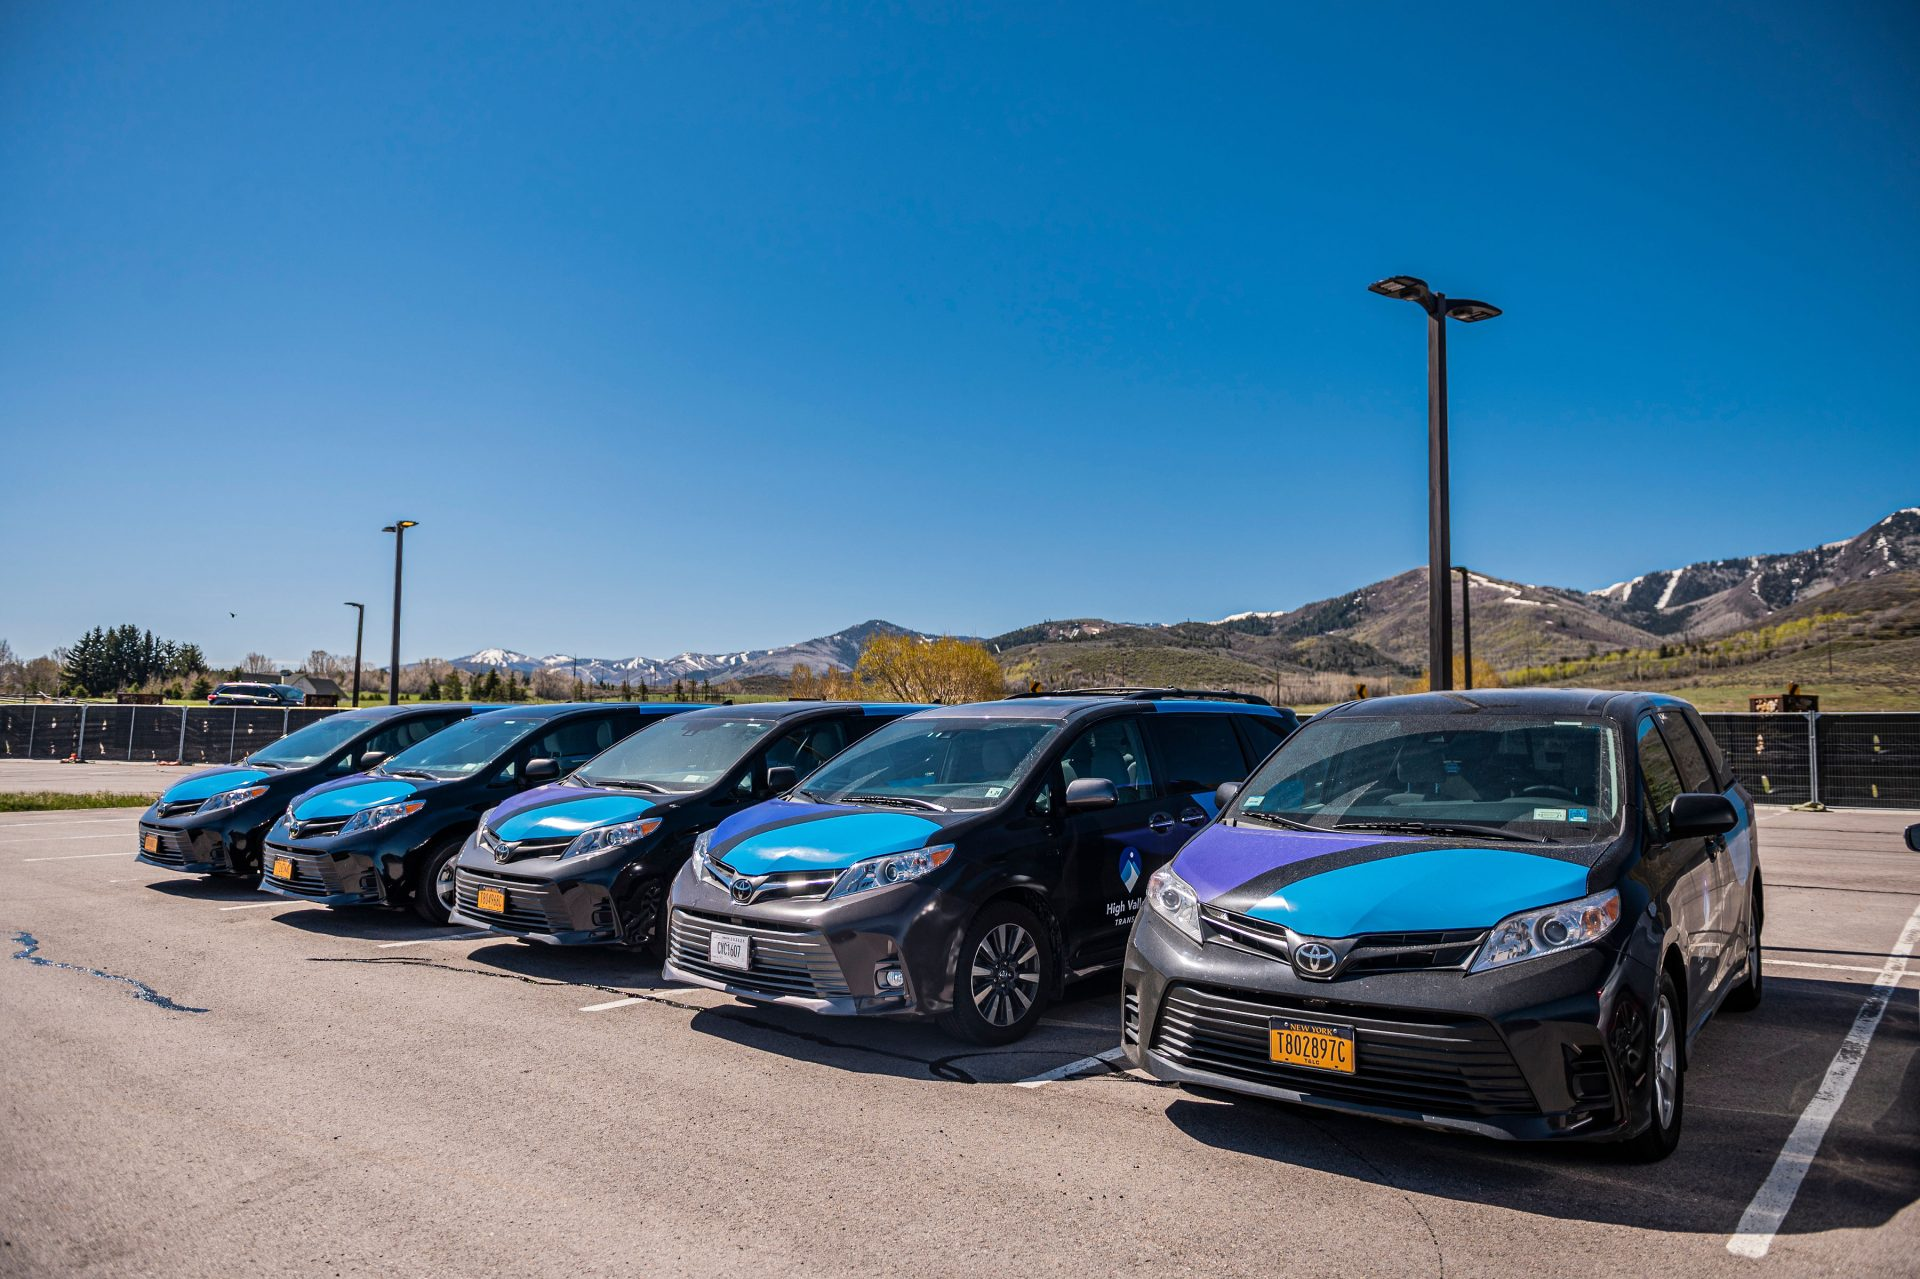 Five Micro vehicles parked in a parking lot on a sunny day, mountains are in the background